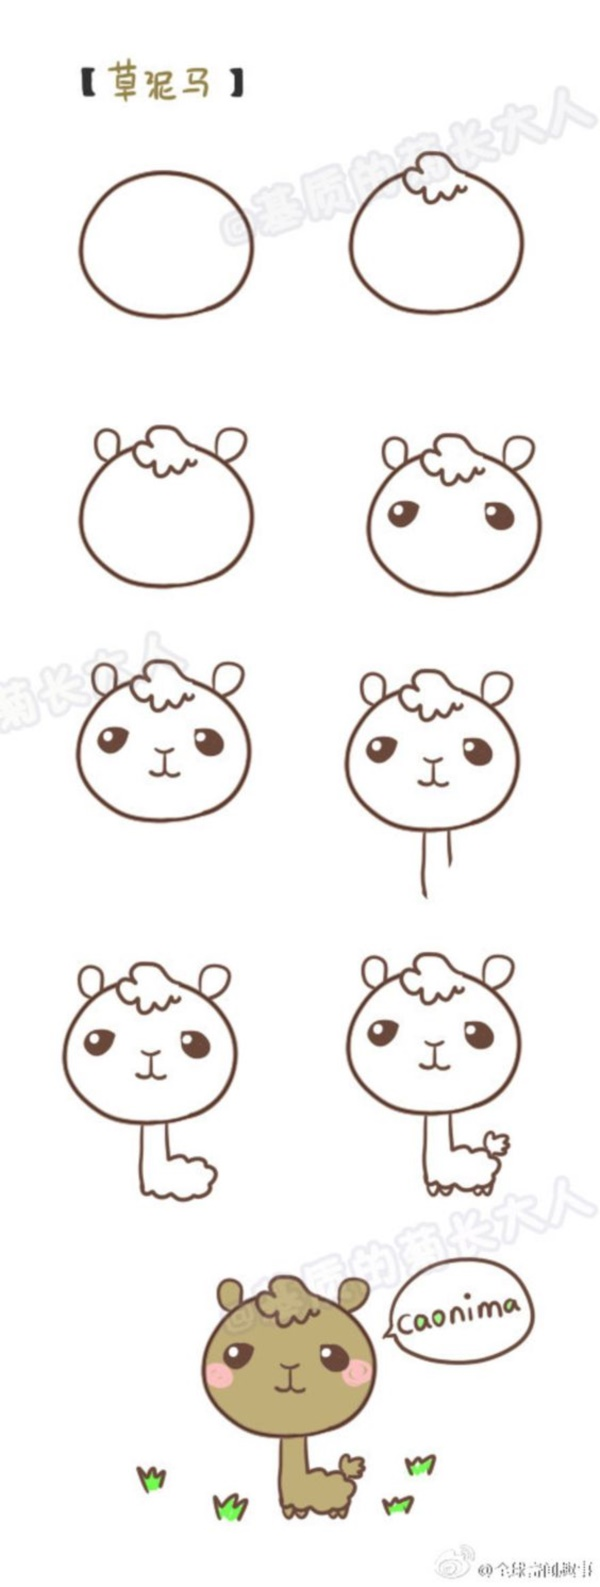 How To Draw Doodles 40 Step By Charts Bored Art